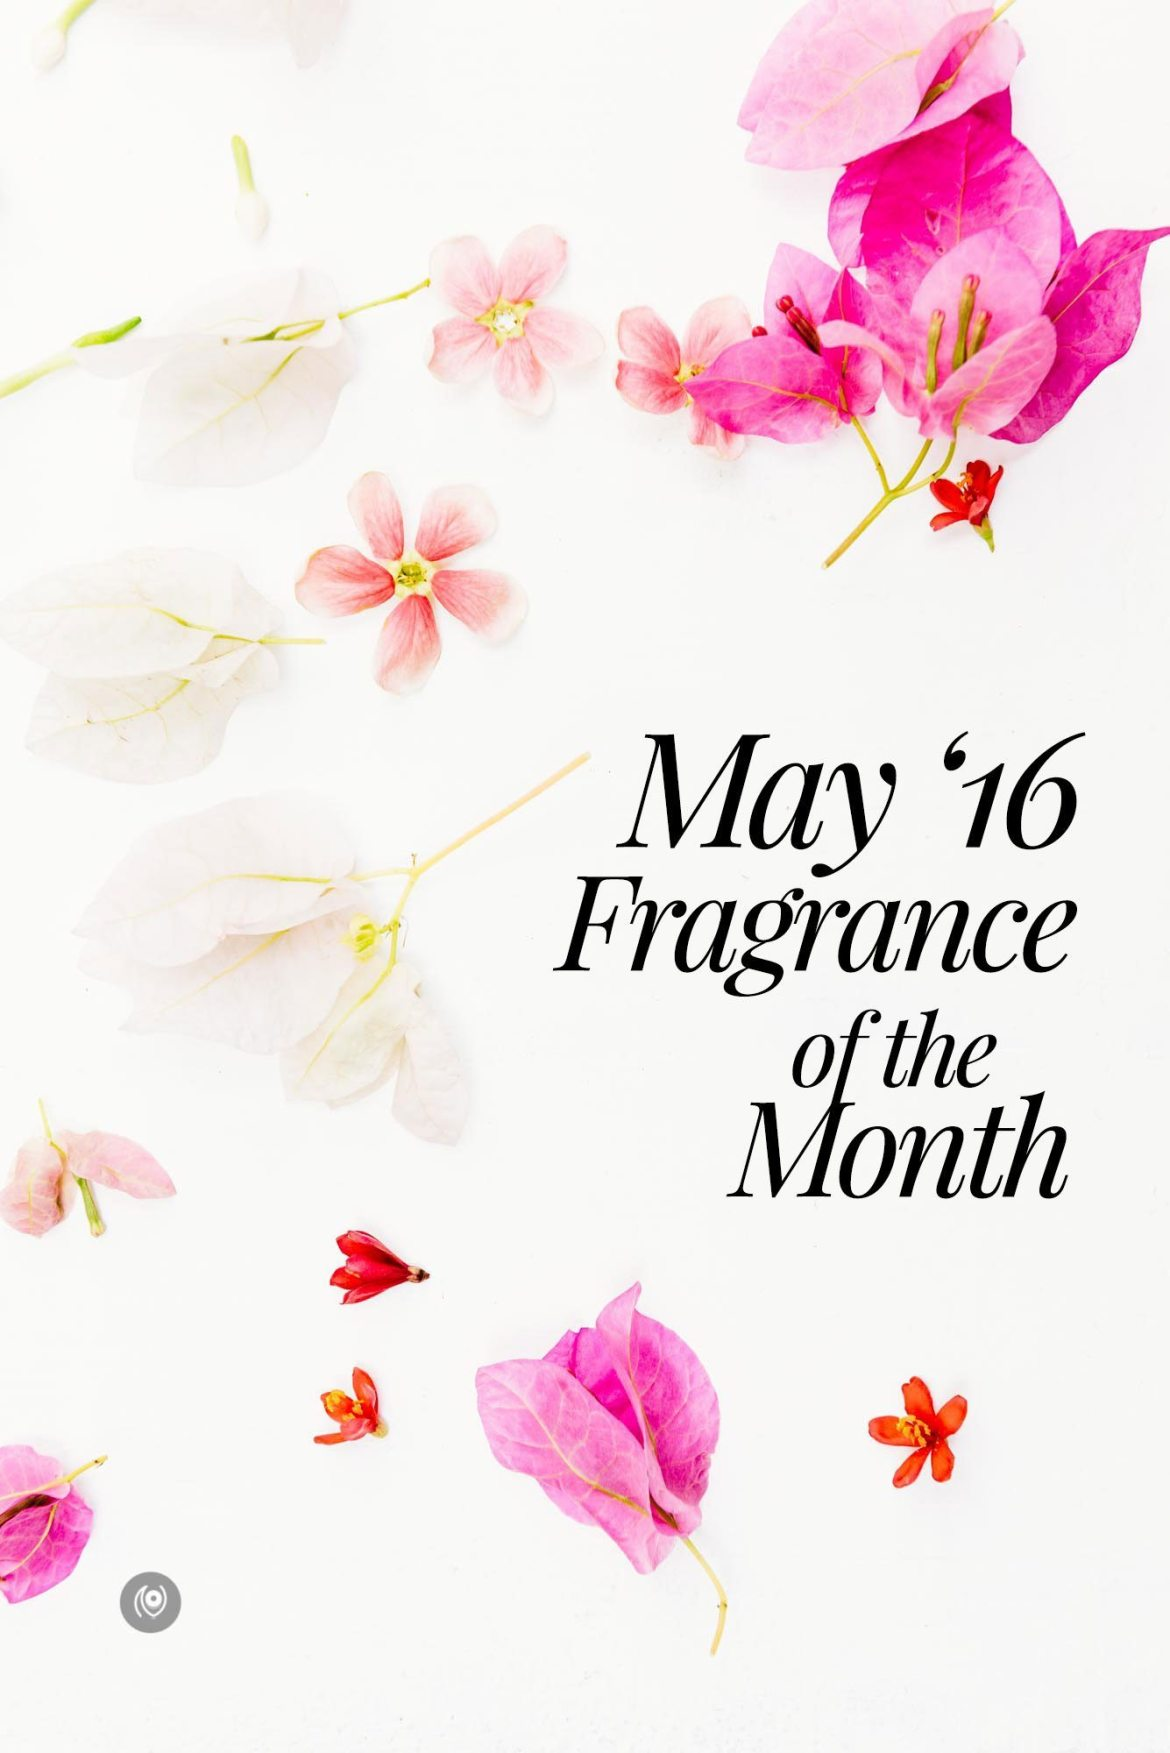 FragranceOfTheMonth-Naina.co-Jour-Hermes-Gardenia-EyesForLuxury-01